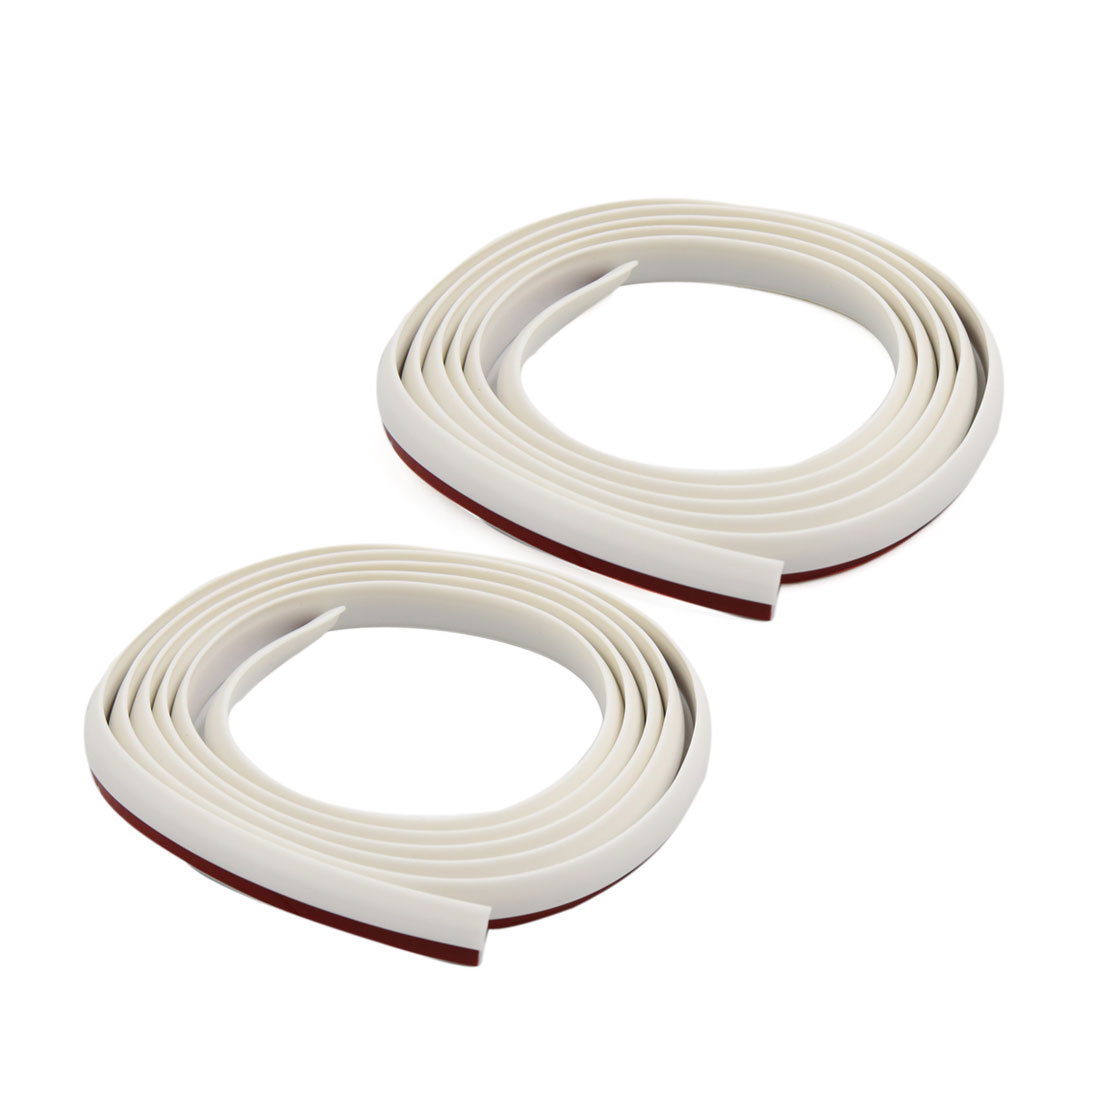 2 Pcs 167cm White Car Door Edge Guards Bumper Protection Strip Scratch Protector